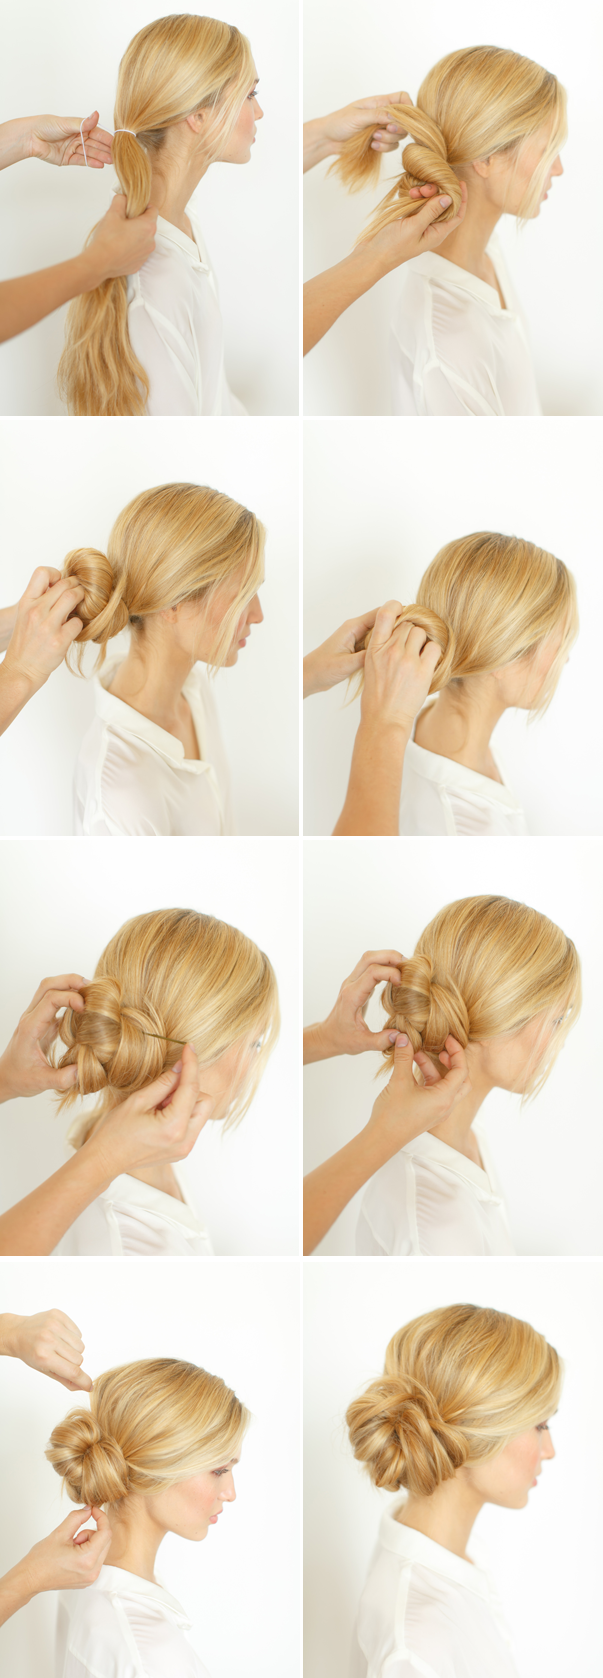 DIY- The Knotted Bun